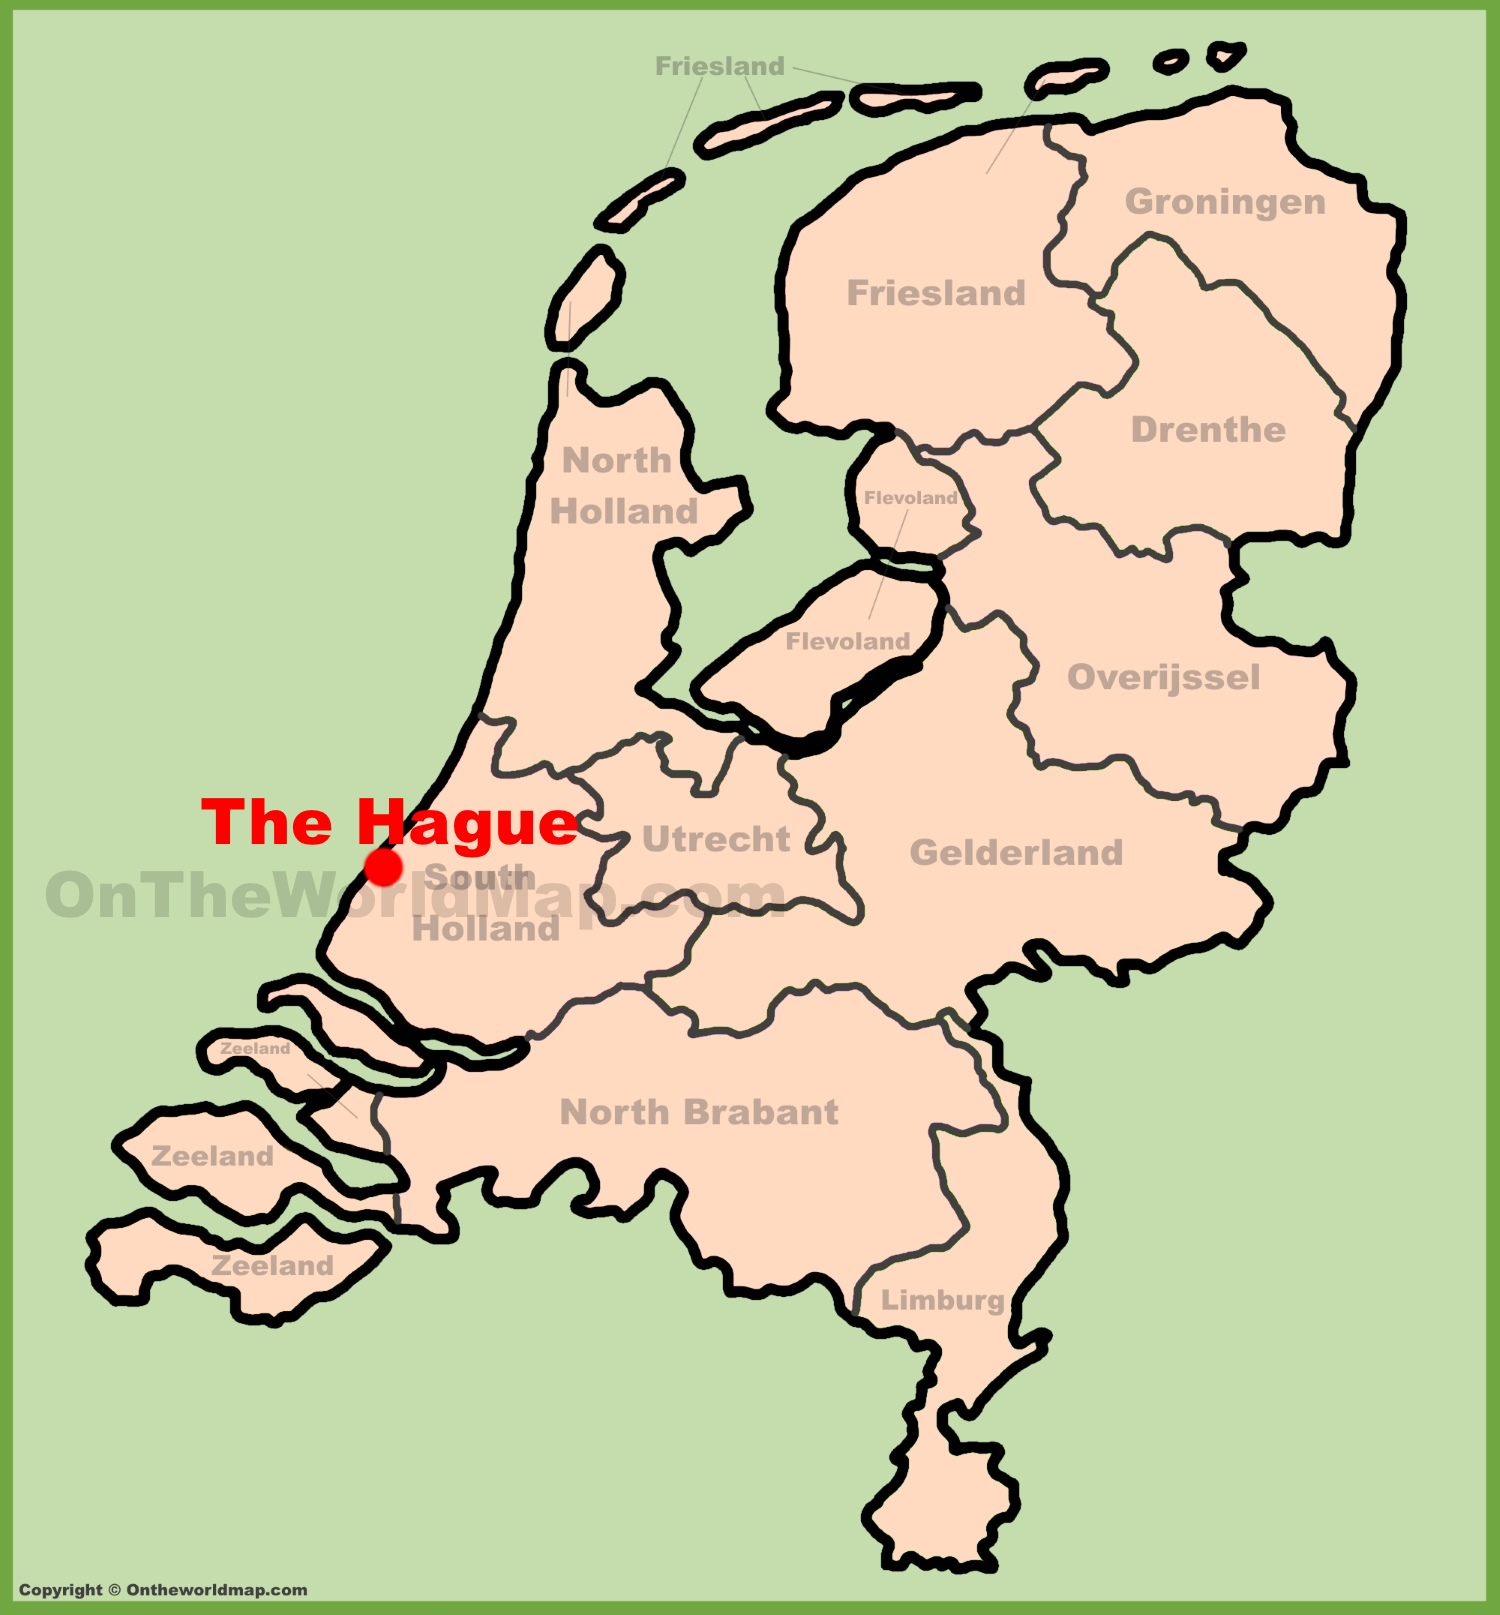 The Hague location on the Netherlands map